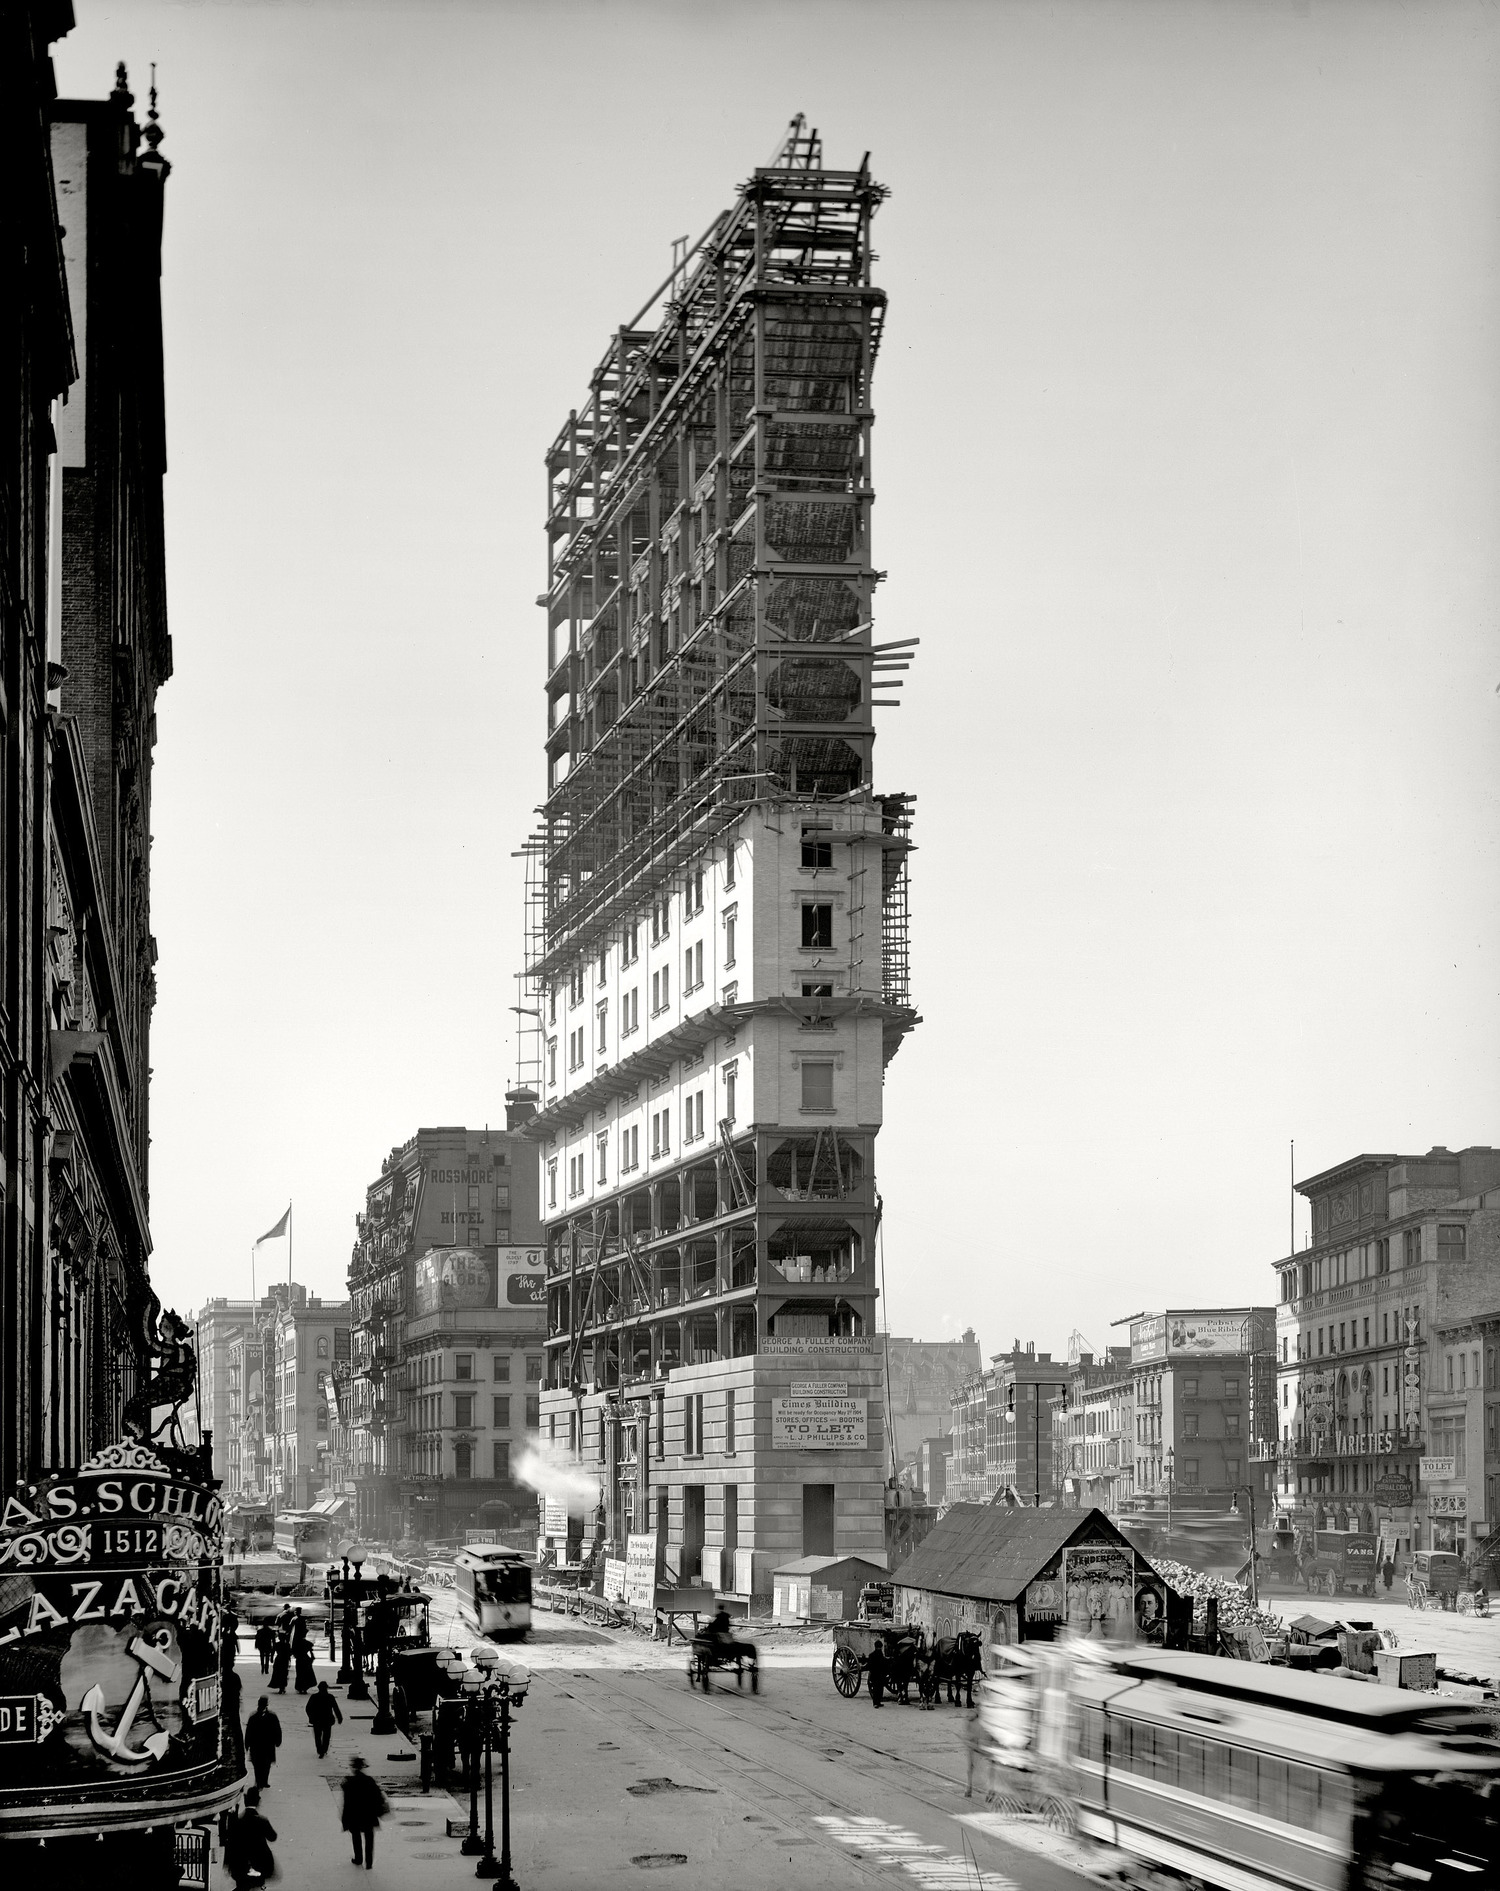 One Times Square under construction in 1903.